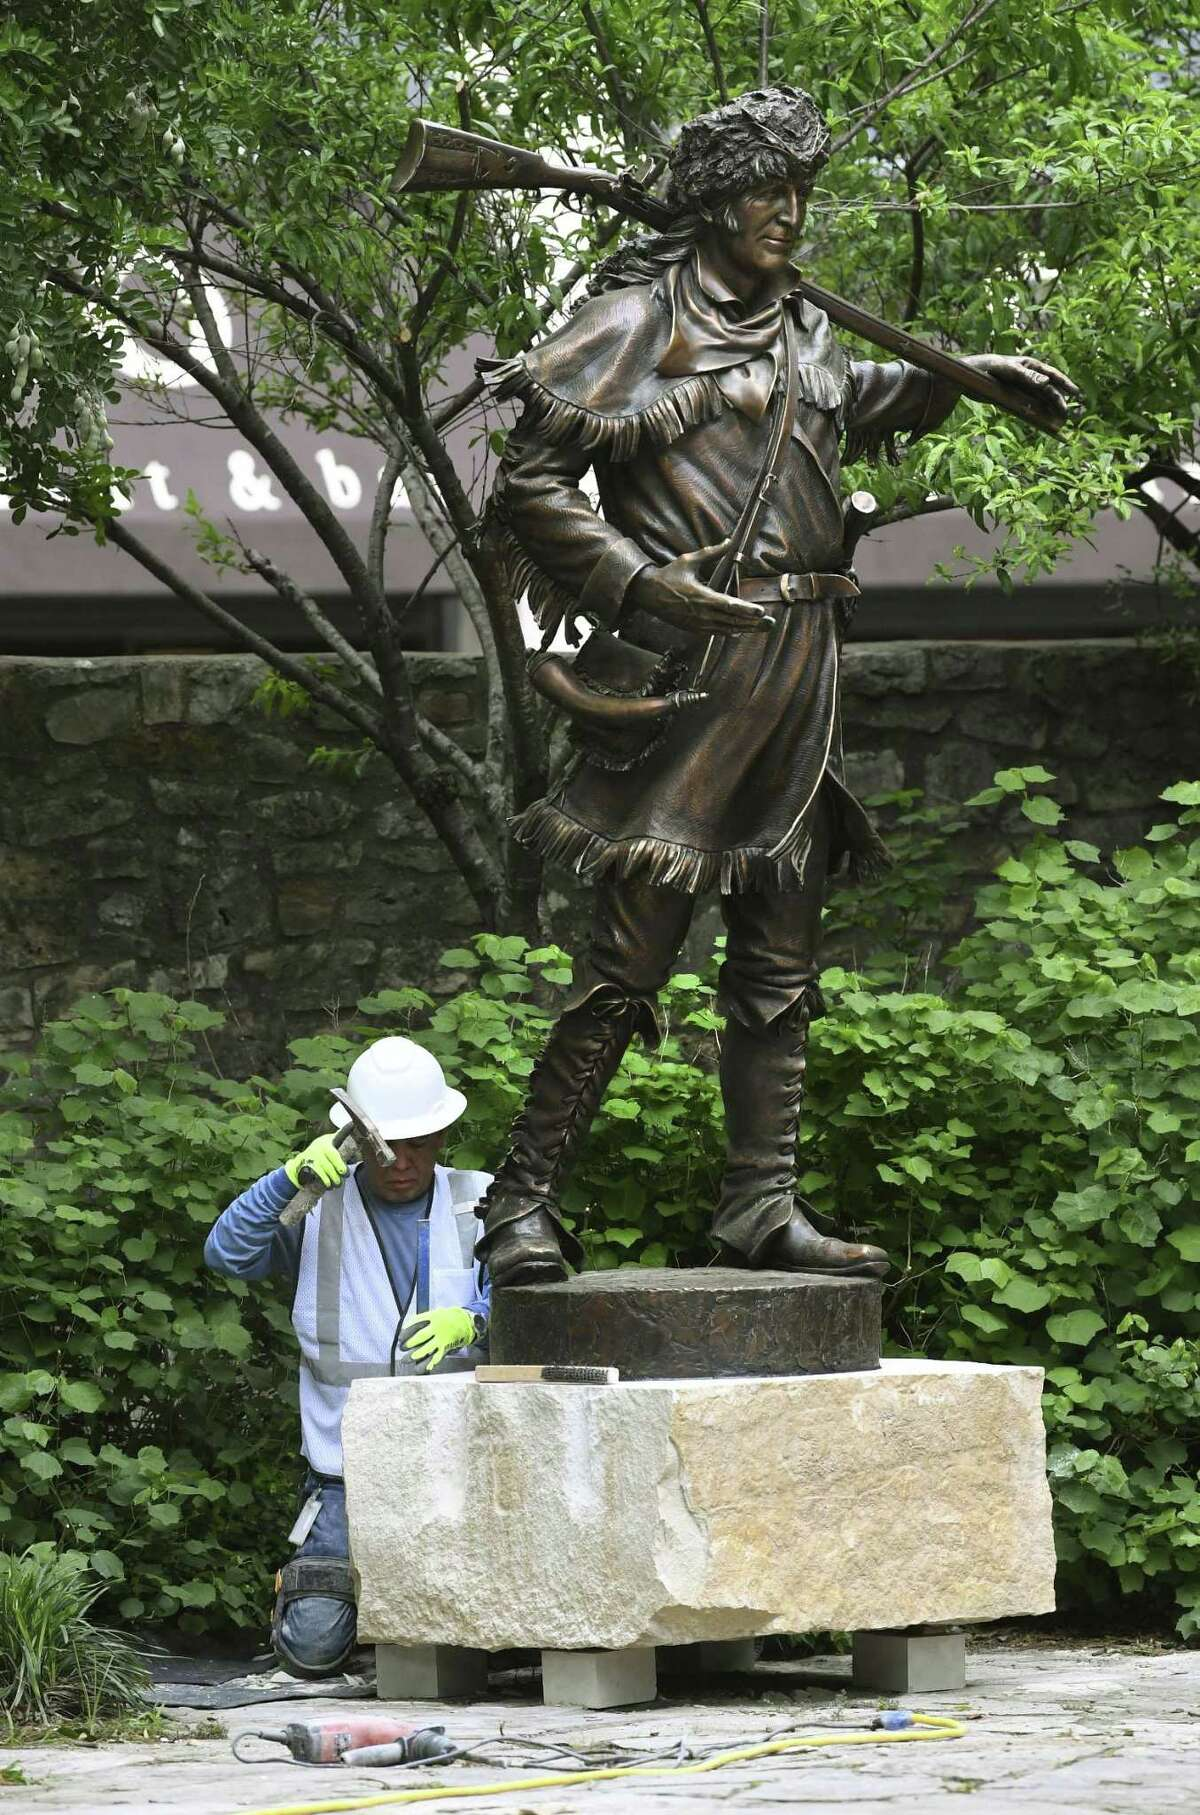 A statue of David Crockett, who fought at the 1836 Battle of the Alamo, is placed in Cavalry Courtyard on Tuesday, April 30, 2019. Bronze sculptures of historic Alamo personalities are being installed. They also include William Barret Travis, John William Smith, Susanna Dickinson, James Bowie and Jose Antonio Navarro.